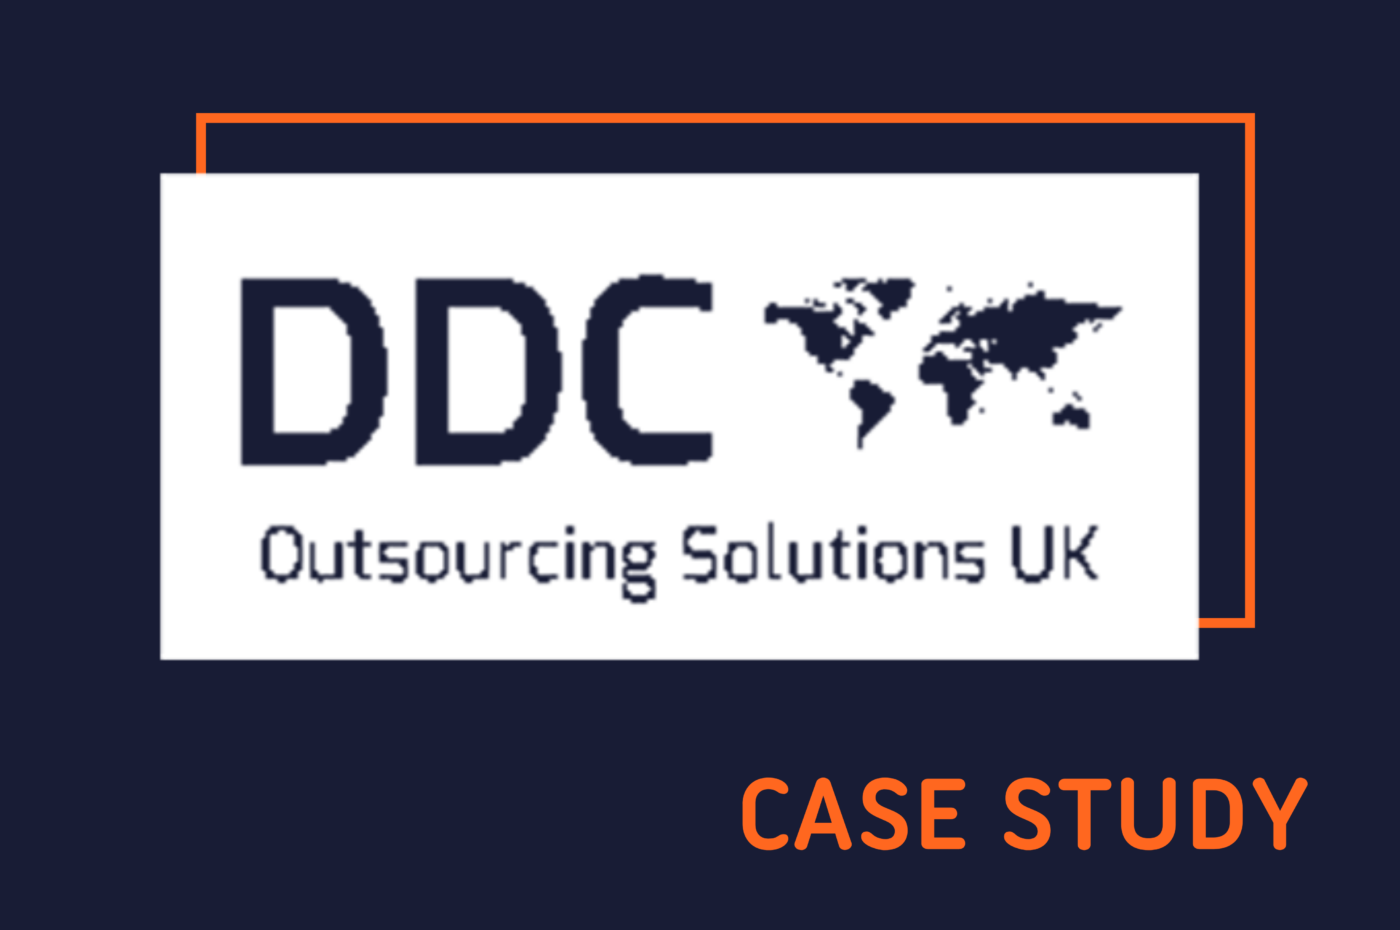 Feature image of DDC Case Study webinar, with DDC logo